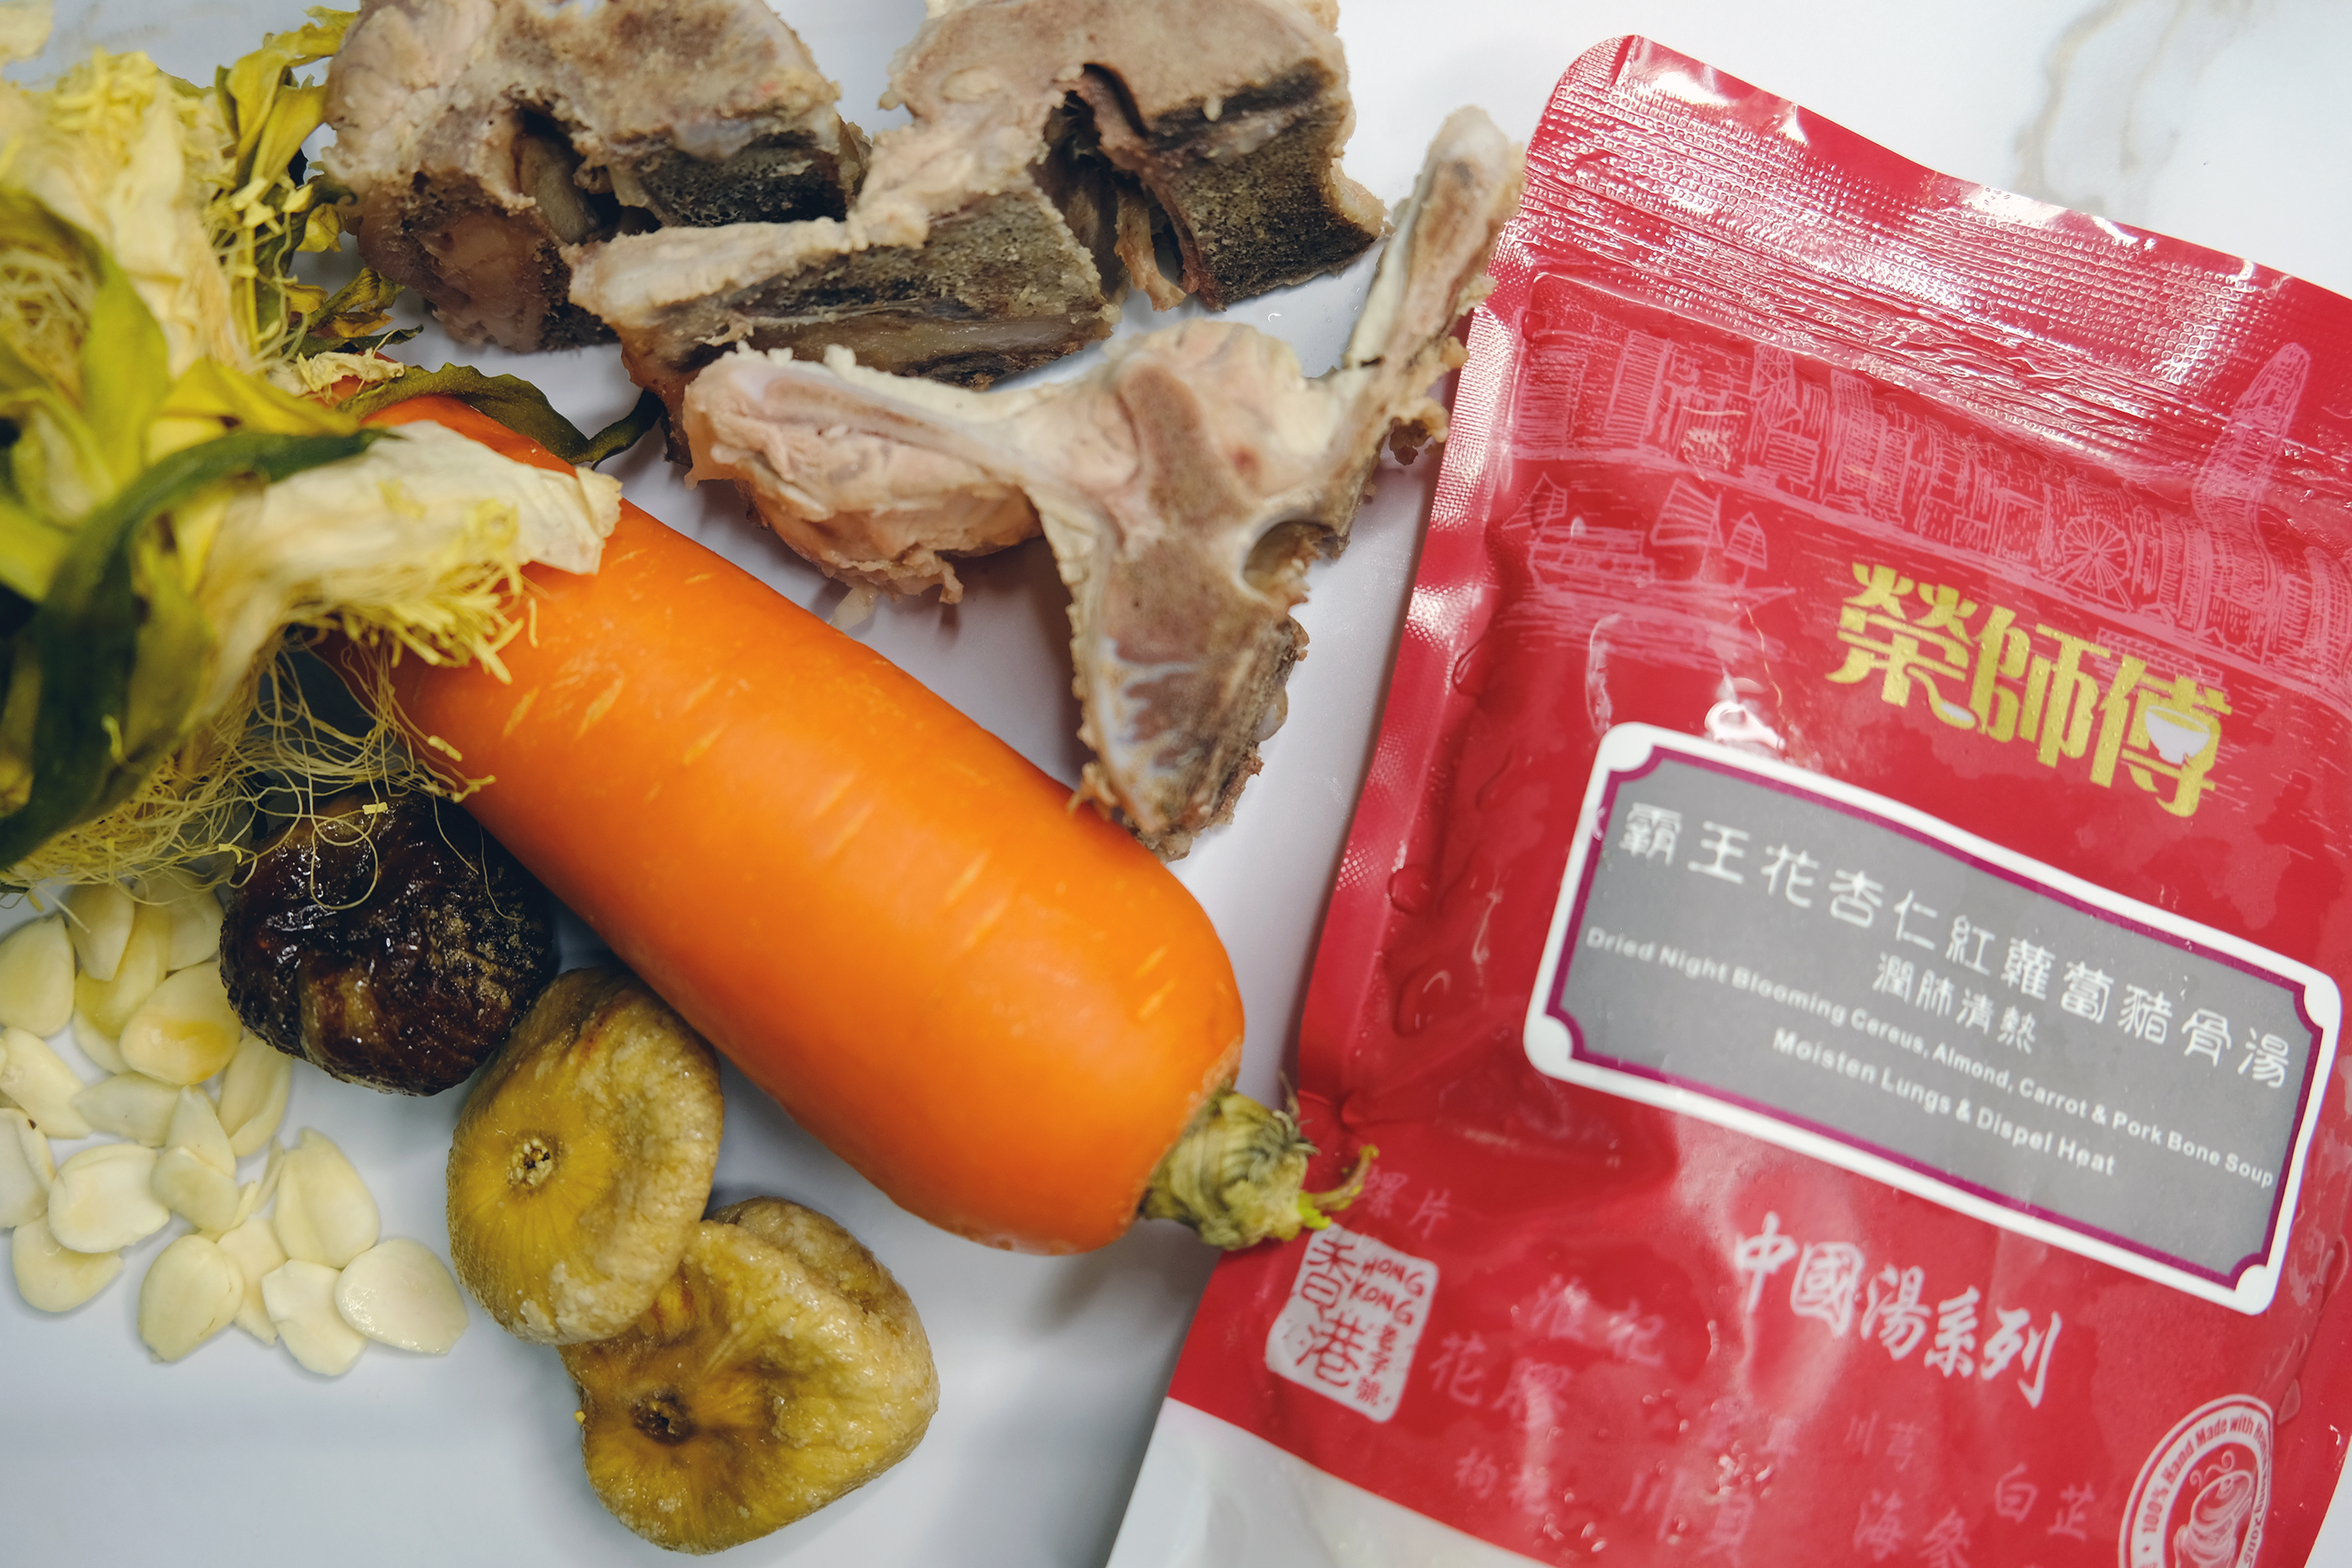 Dried Night Blooming Cereus, Almond, Carrot & Pork Bone Soup (New Product)